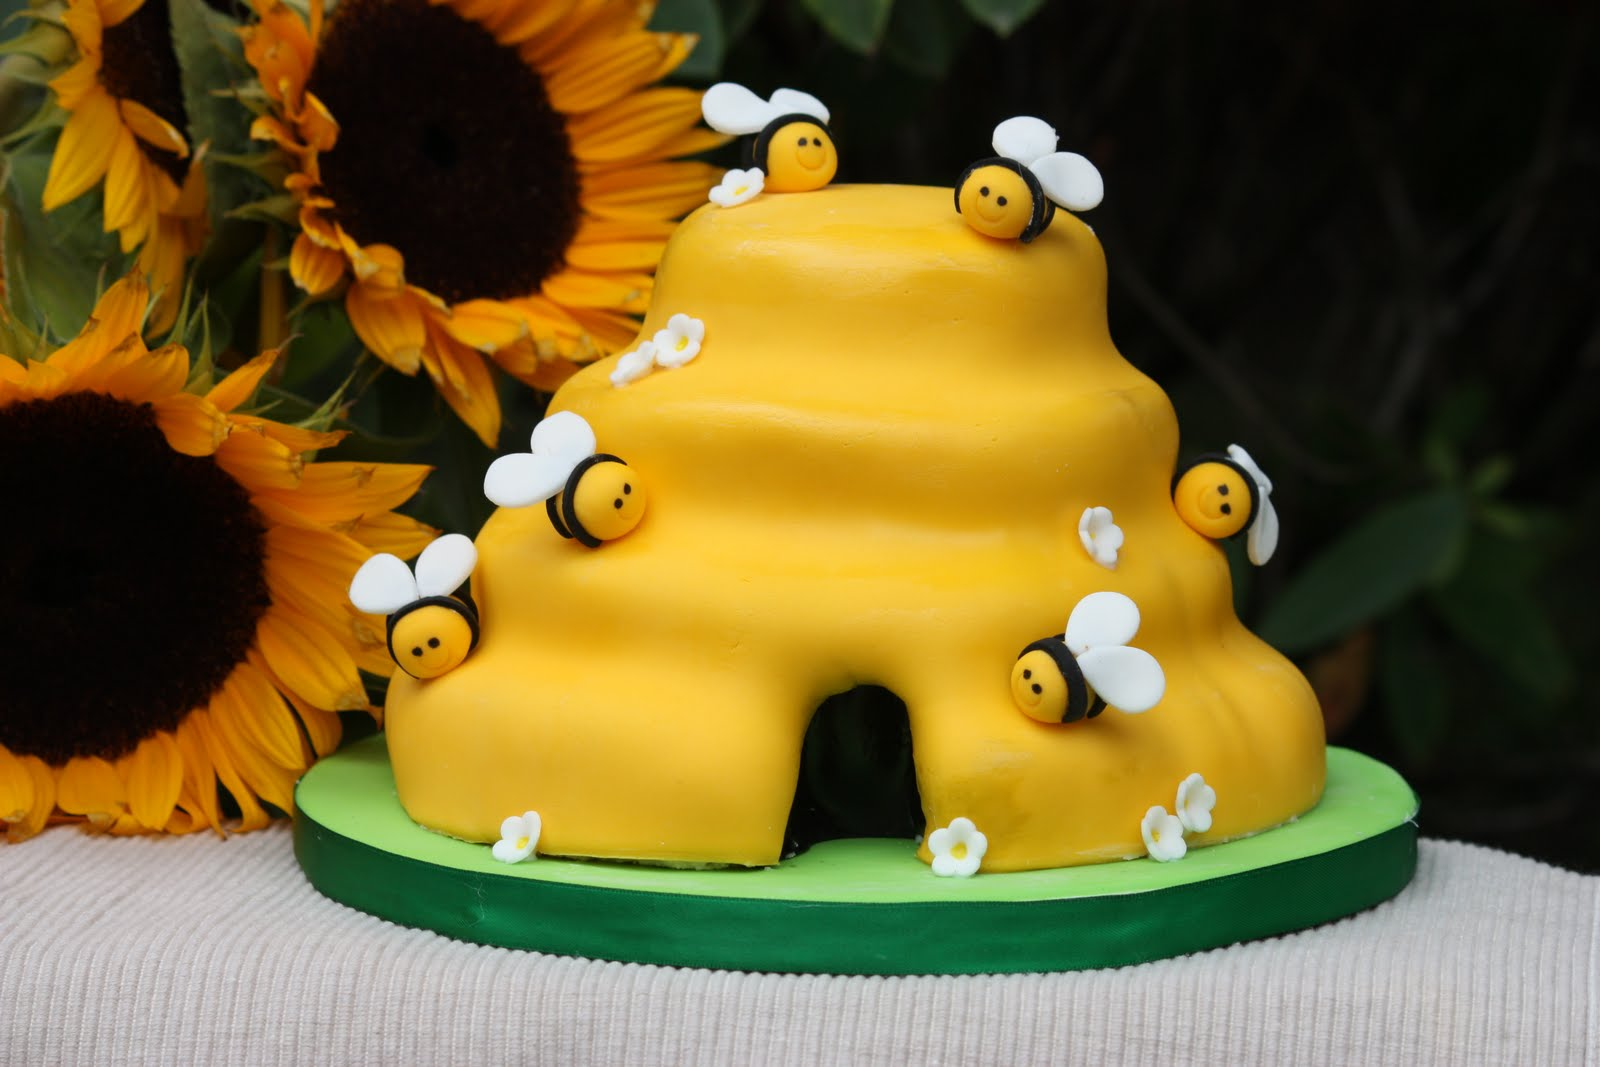 Outstanding Bumble Bee Cakes Decoration Ideas Little Birthday Cakes Personalised Birthday Cards Paralily Jamesorg